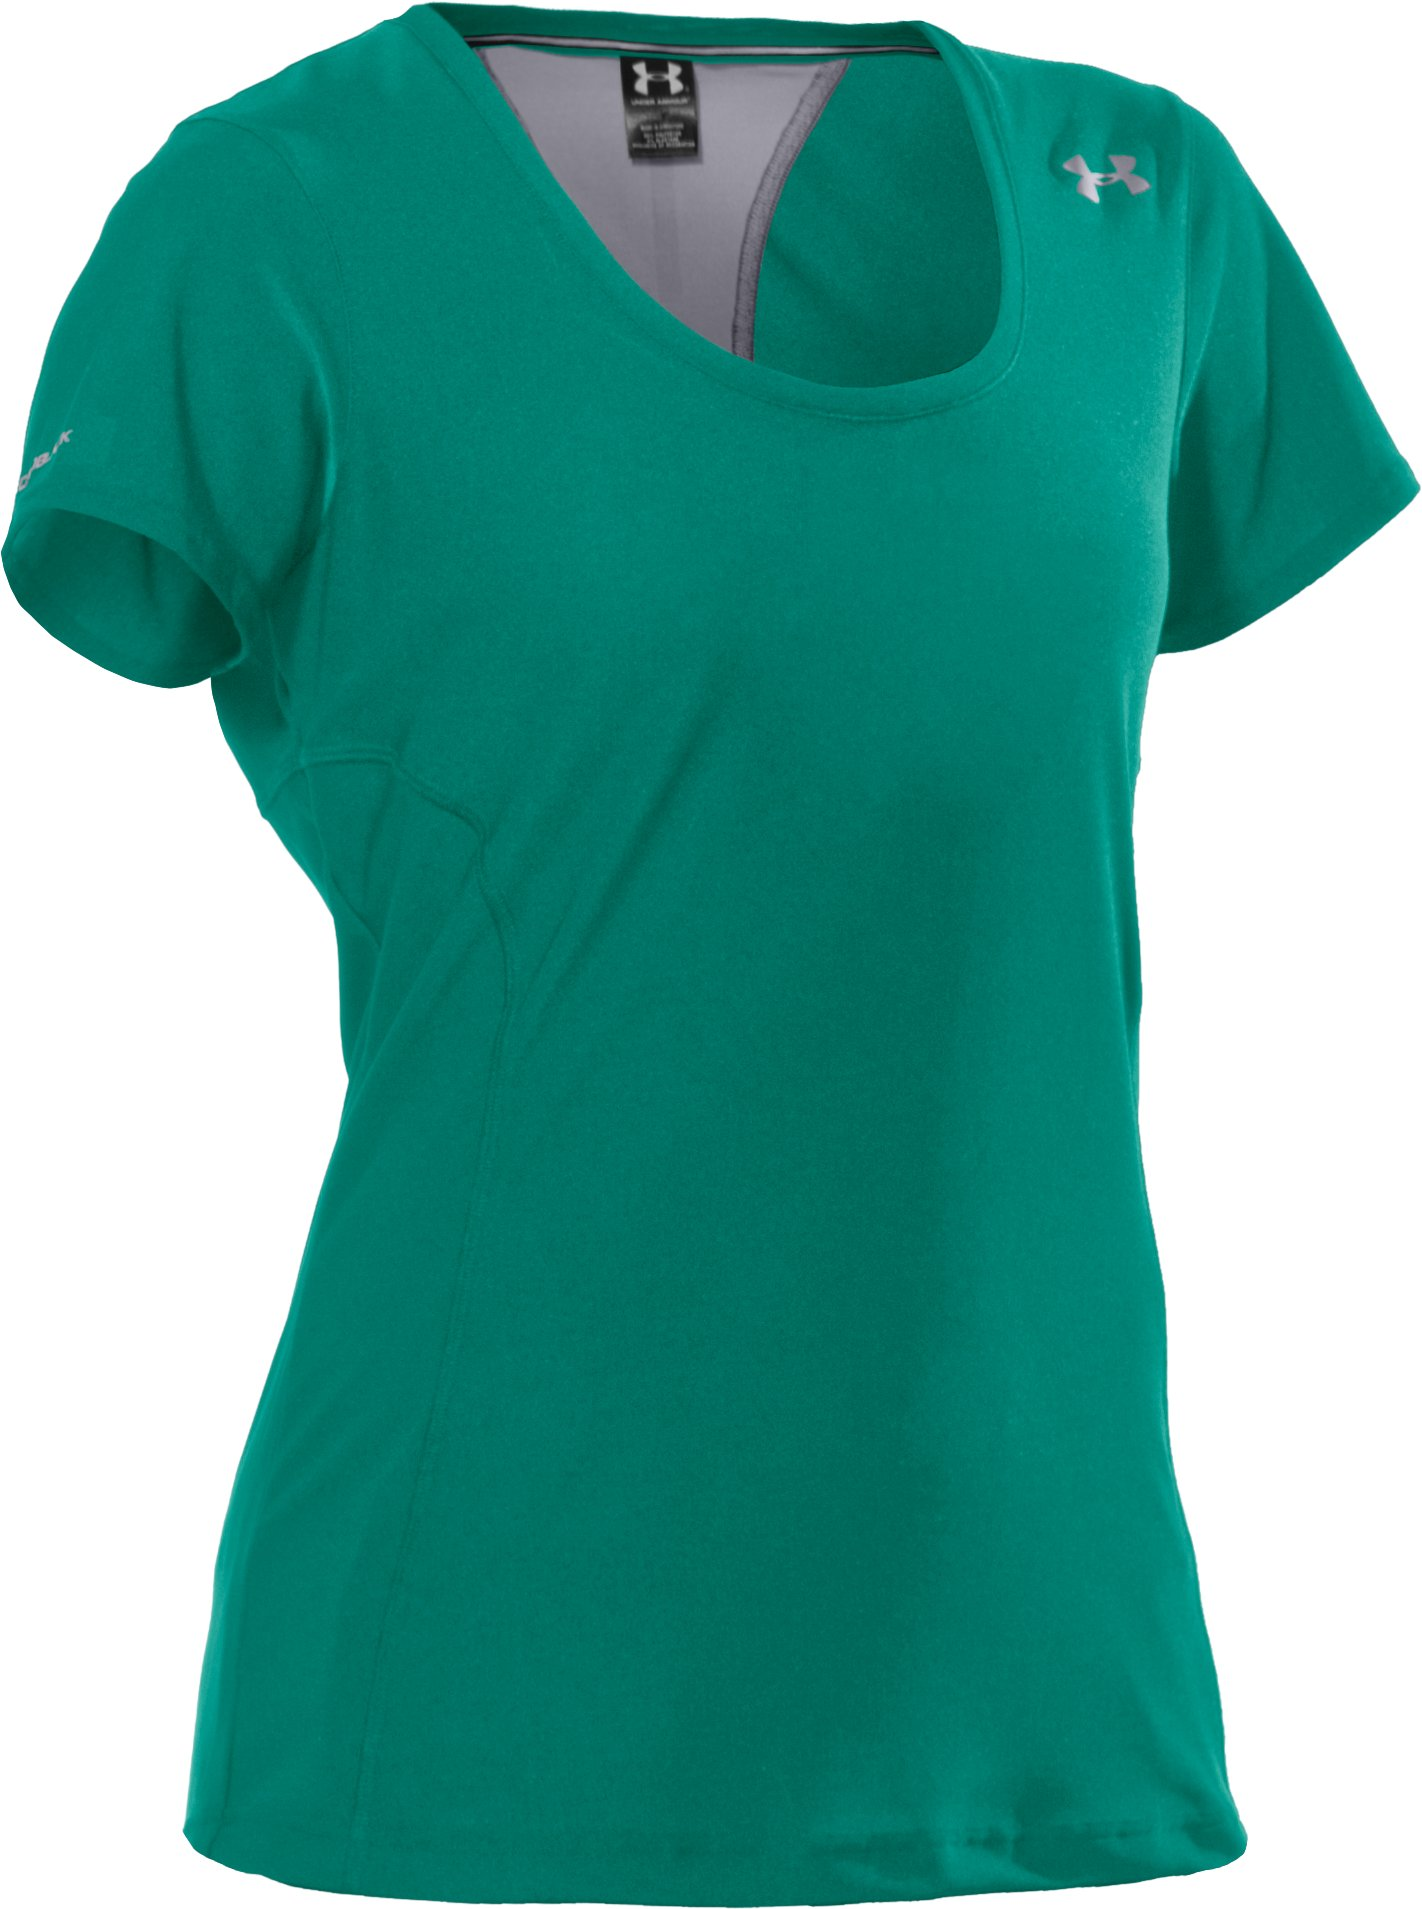 Women's coldblack® Training T-Shirt, Jade River